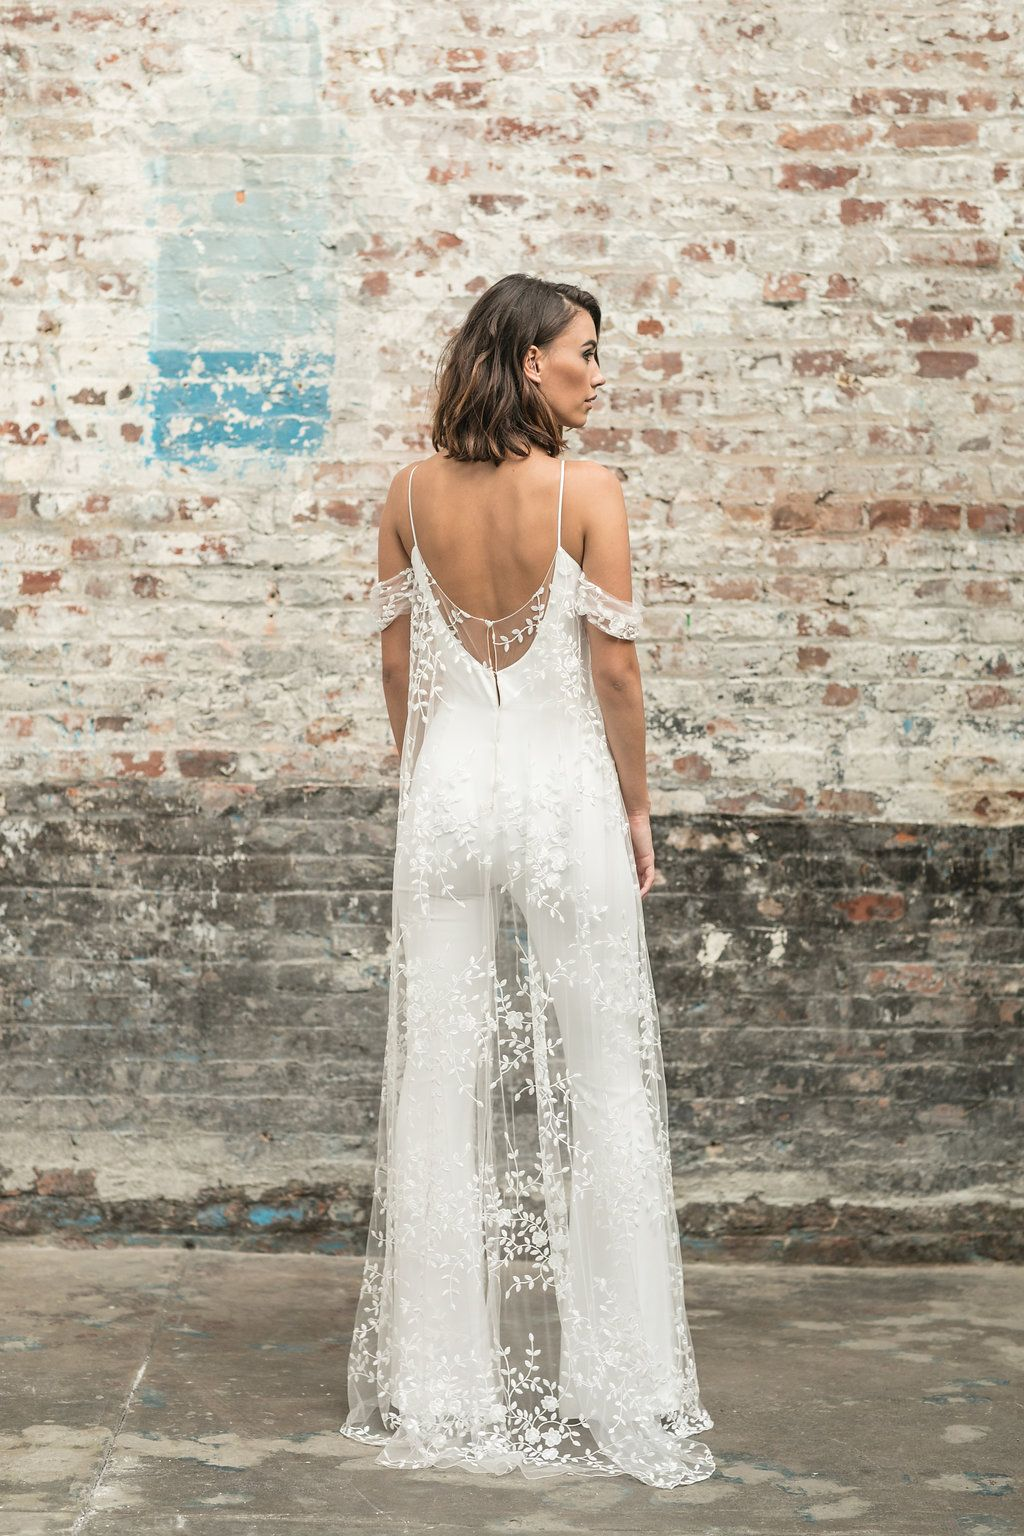 Rime arodaky ripped nd lace jeans in wedding dresses